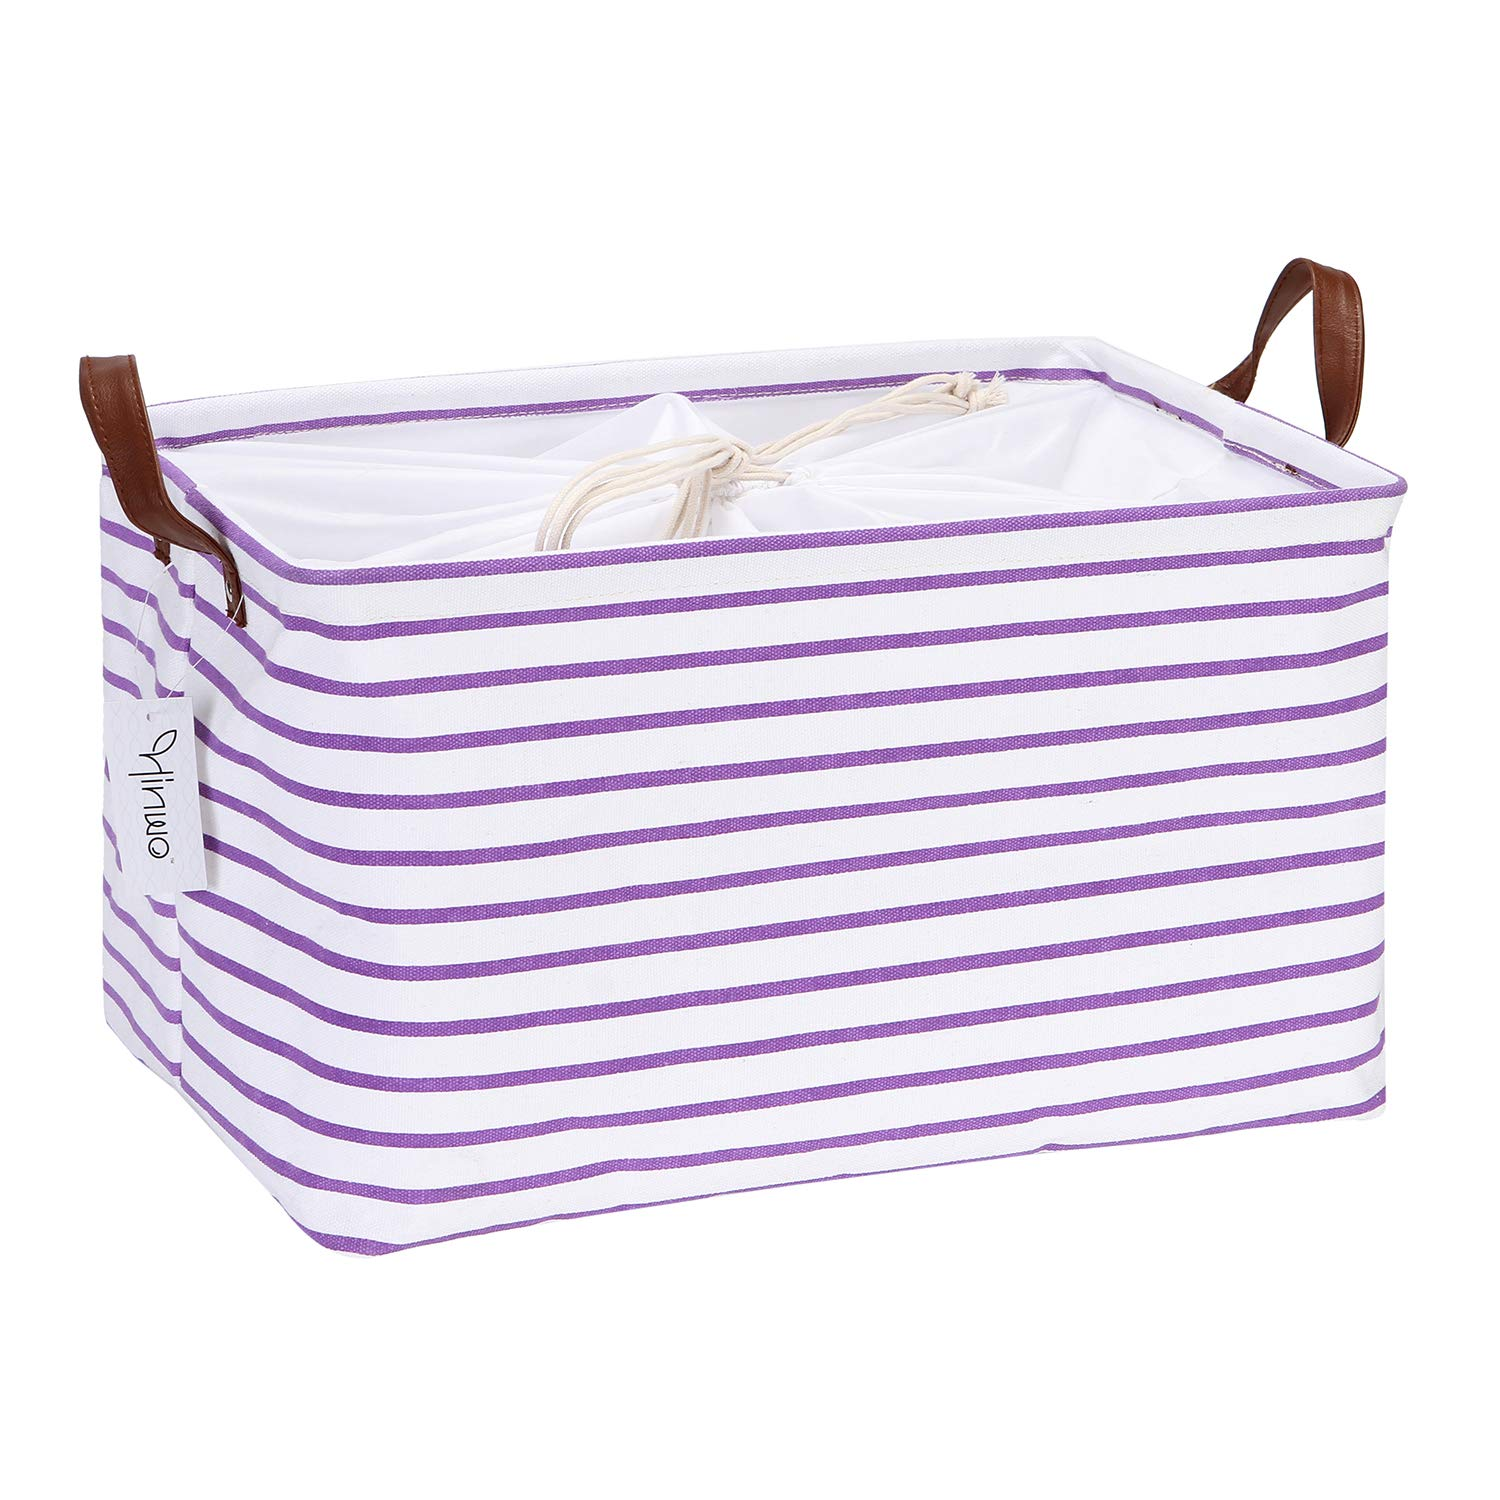 Hinwo 31L Large Capacity Storage Basket Canvas Fabric Storage Bin Collapsible Storage Box with PU Leather Handles and Drawstring Closure, 16.5 by 11.8 inches, Waterproof Inner Layer, Purple Stripe